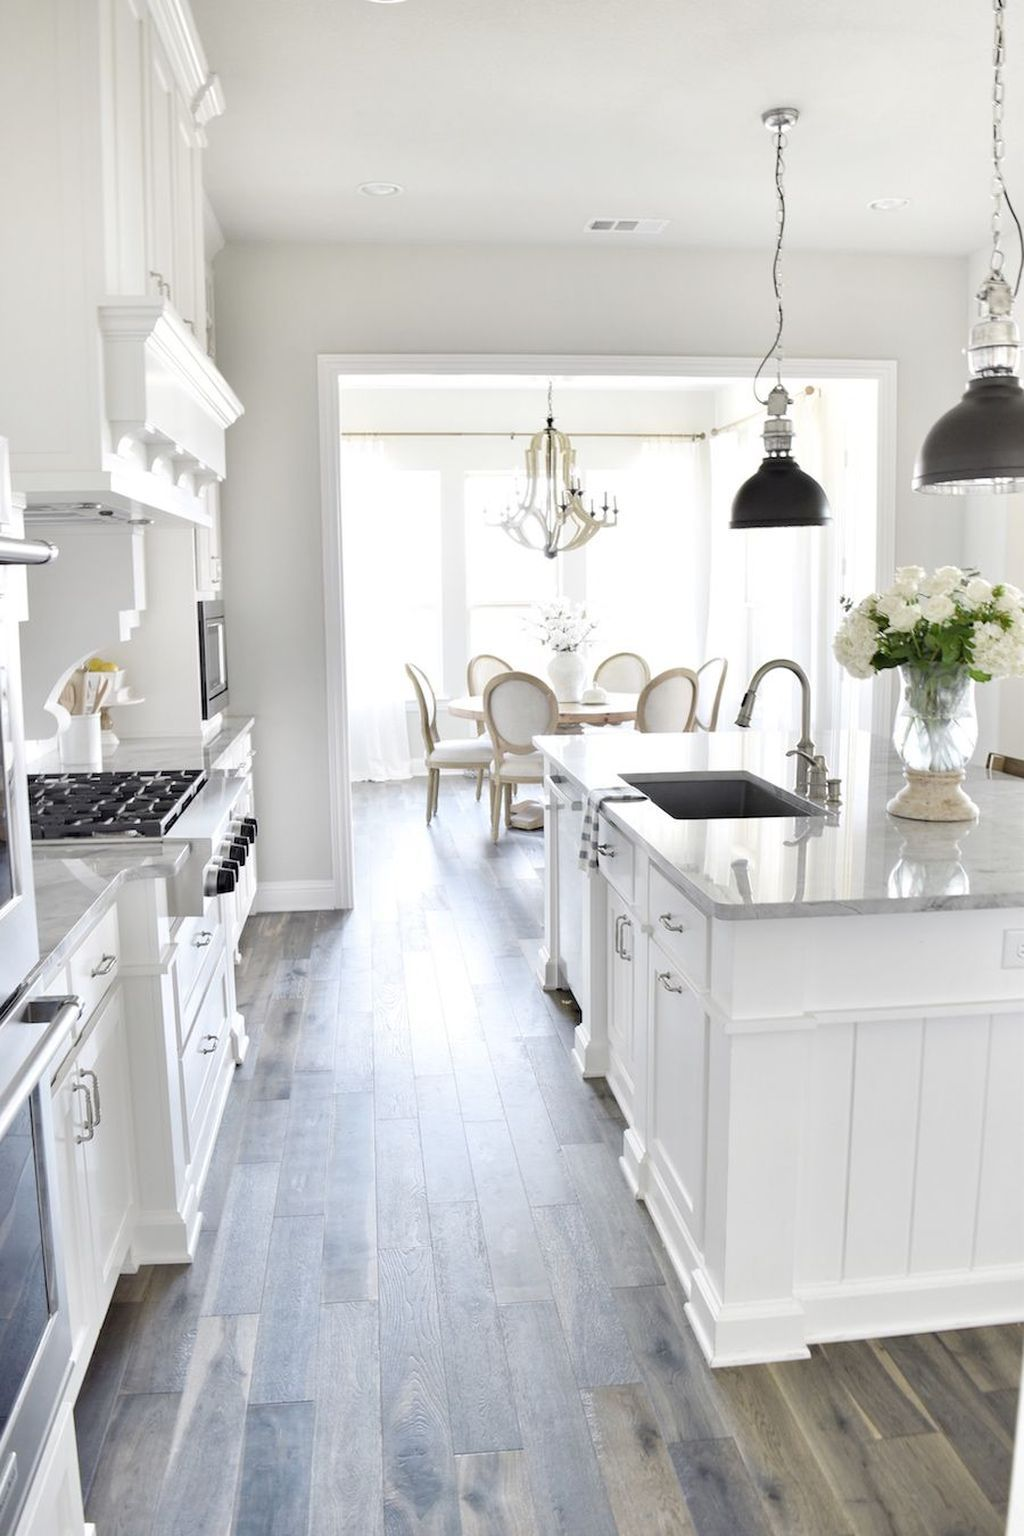 30 Amazing Ideas For Your Dream Home